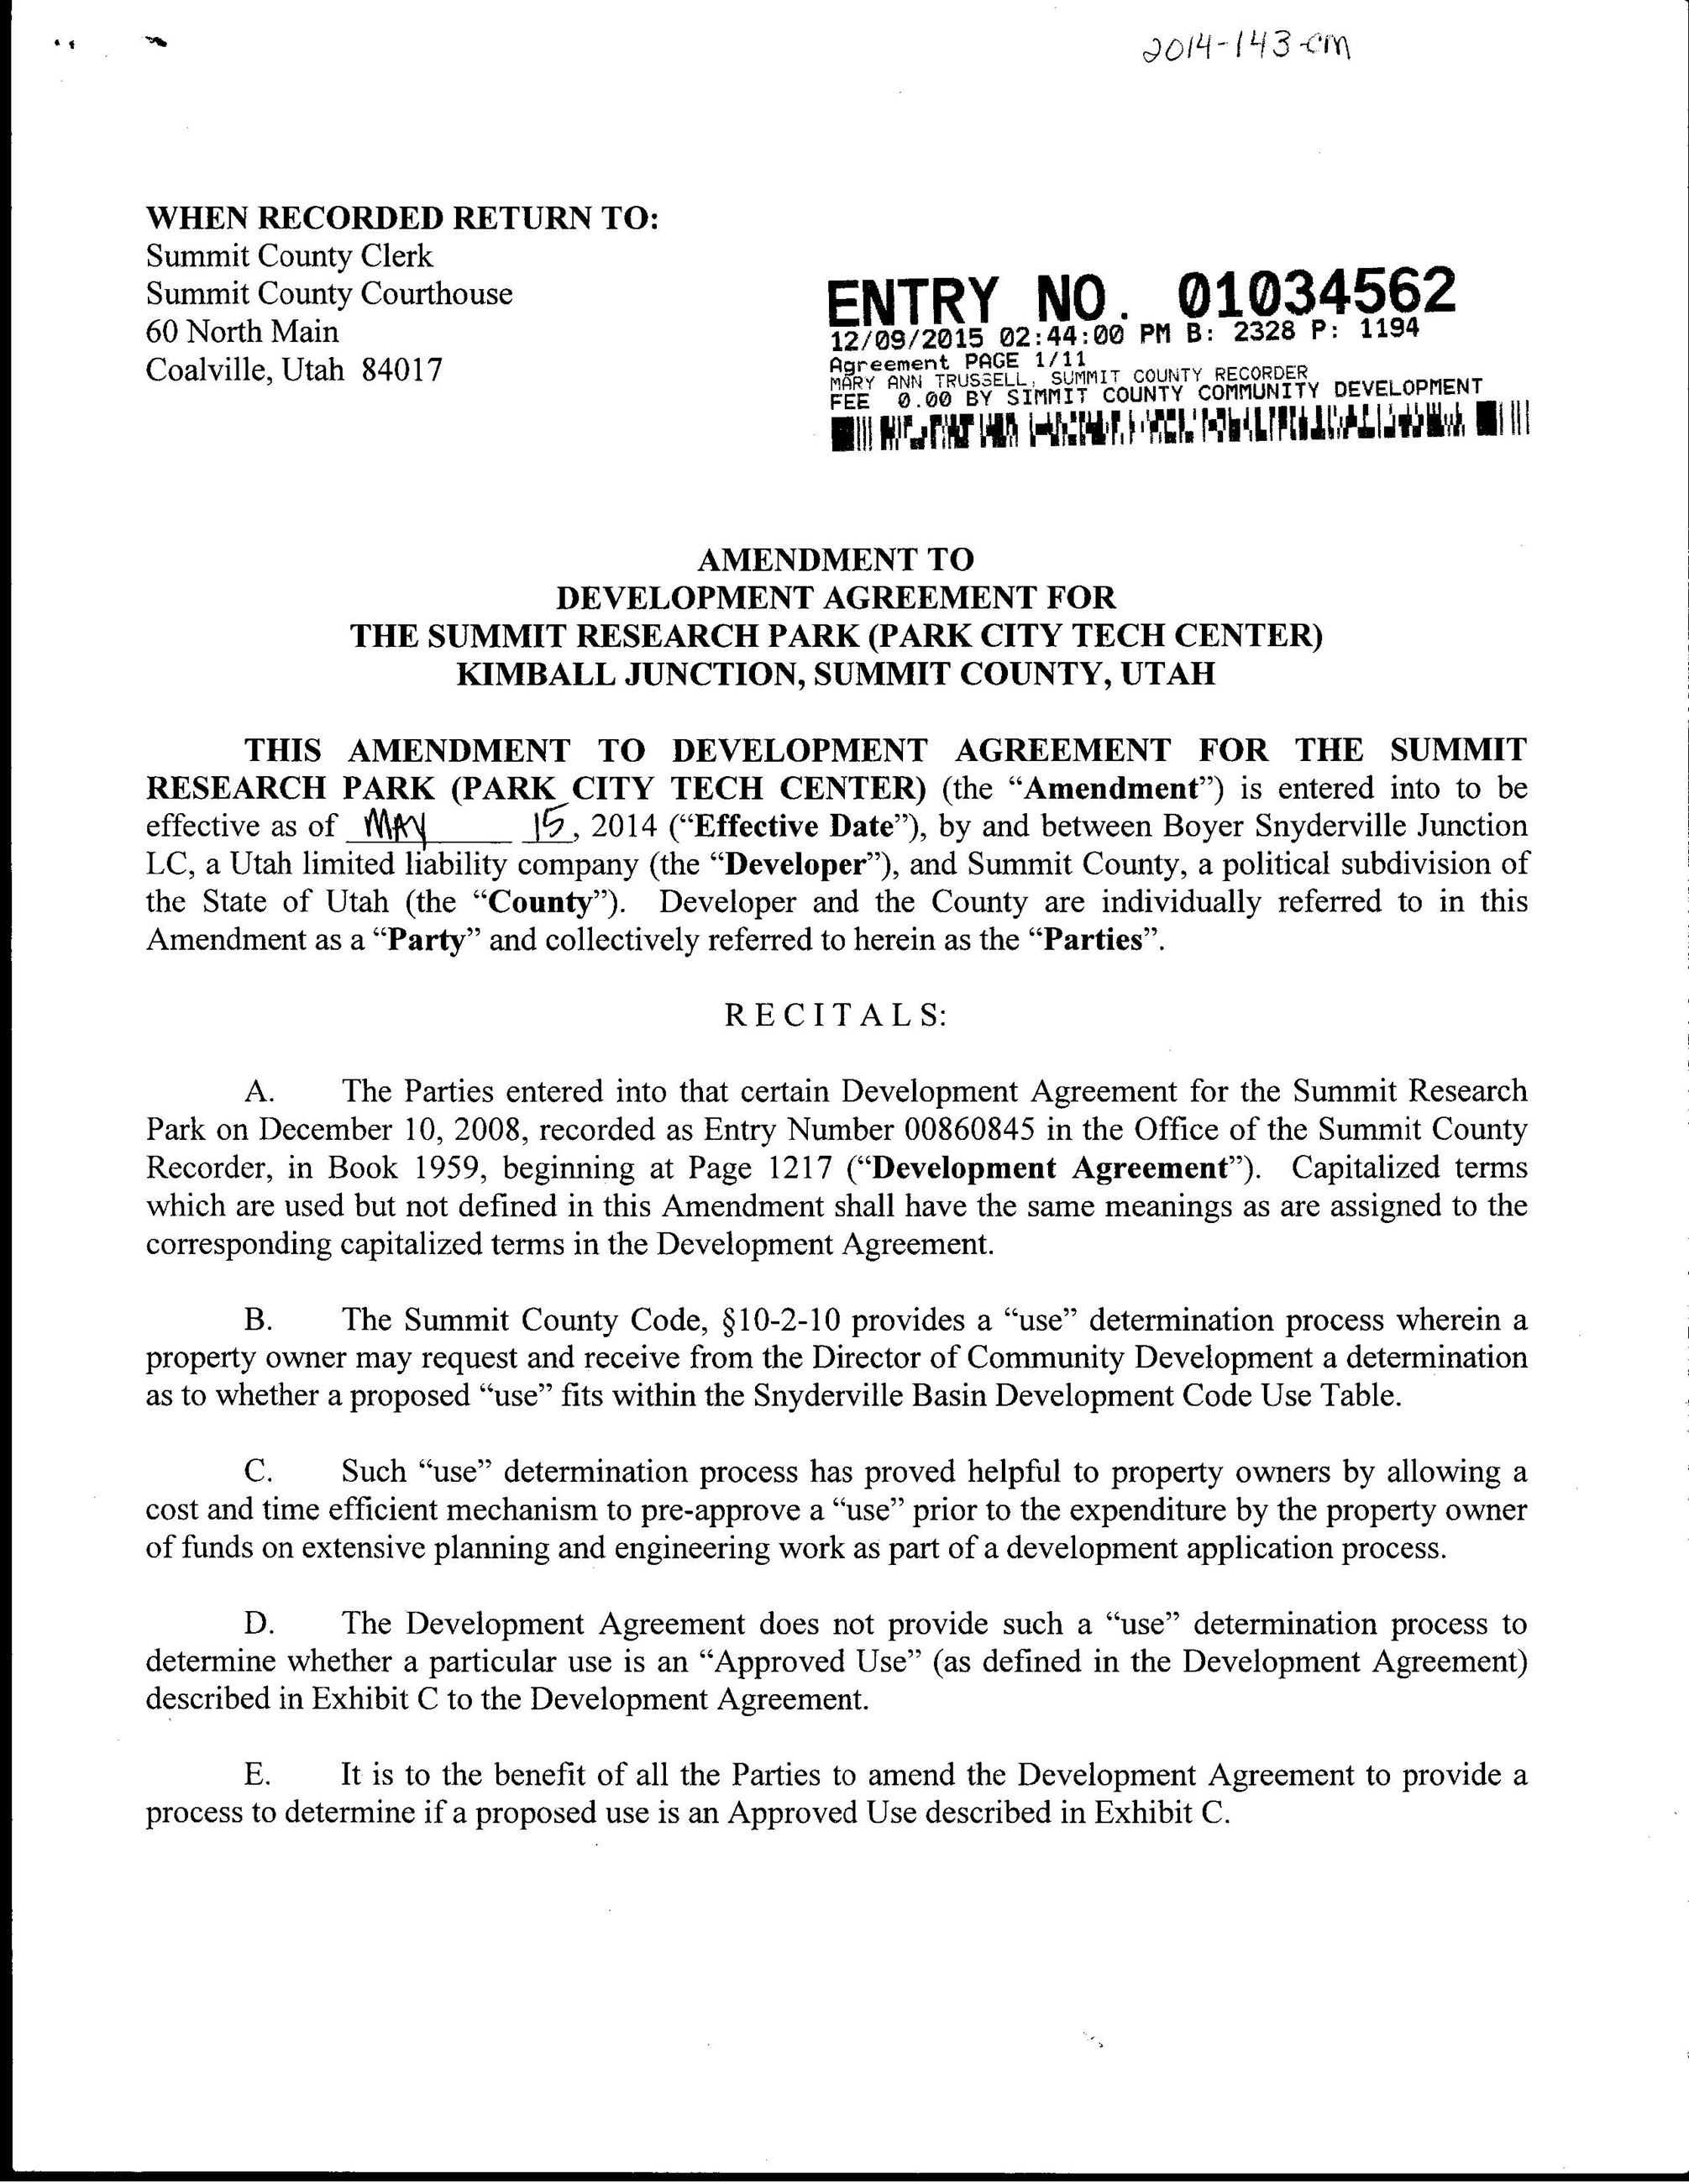 Amendment to DA for Summit Research Park aka PC Tech Center 12.9.15 pg 1